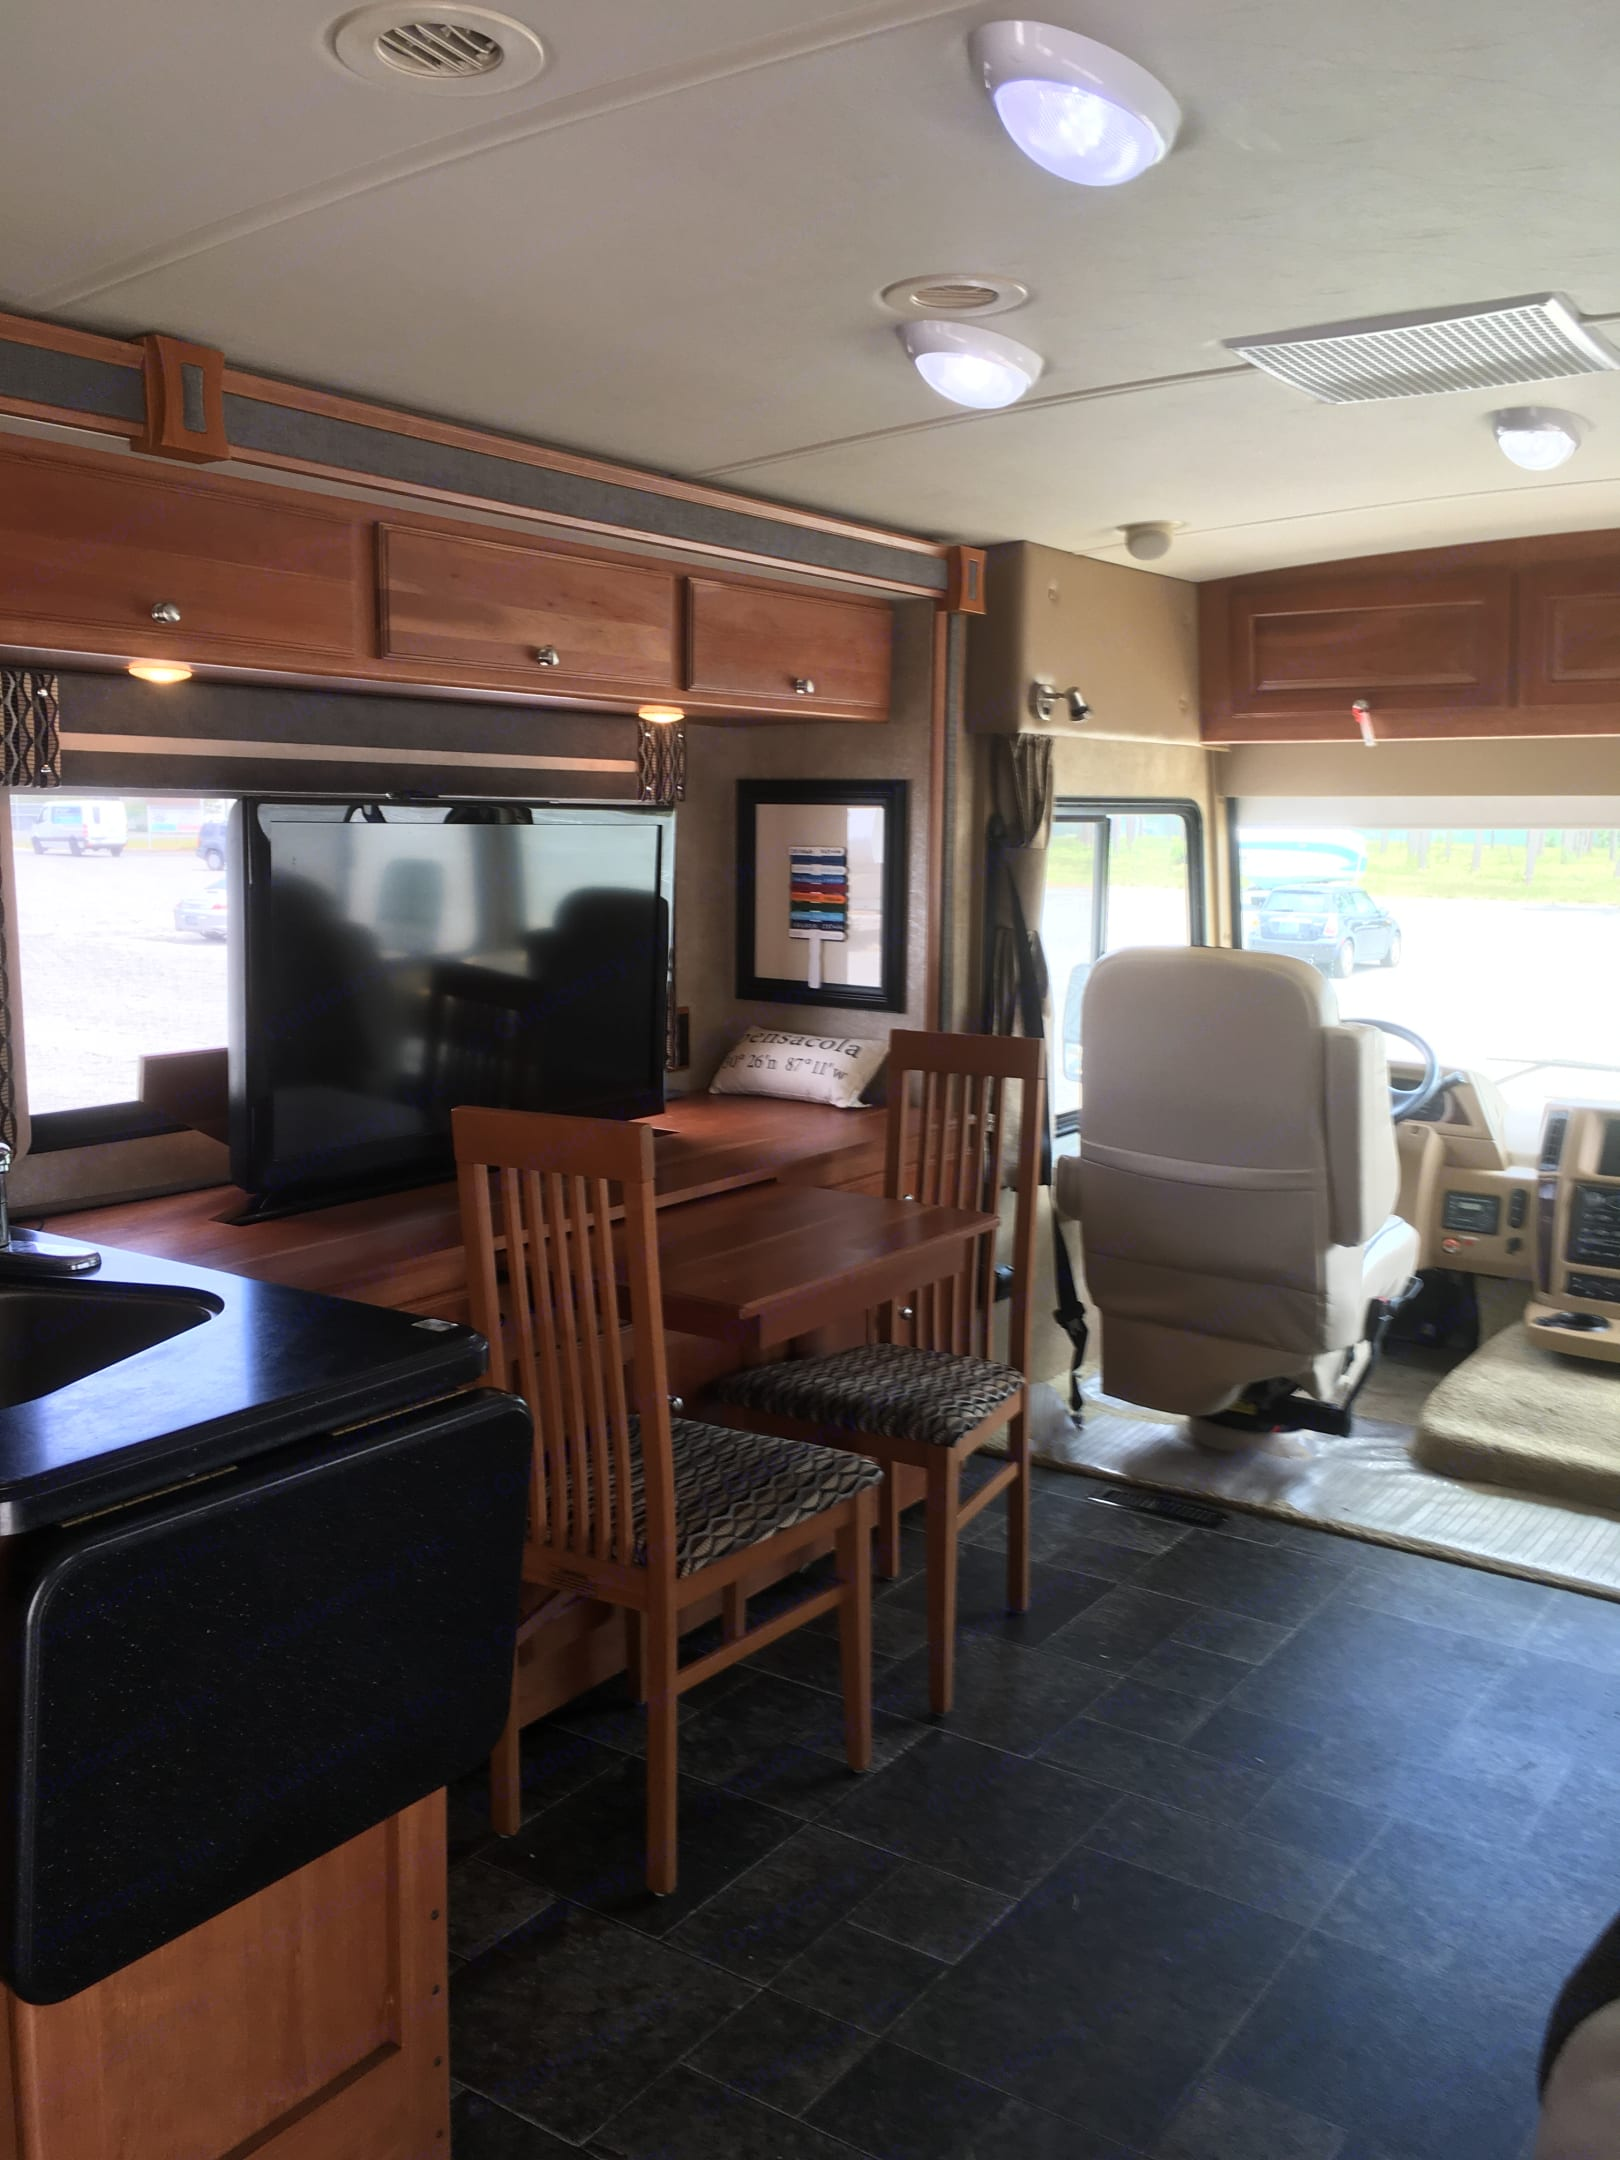 Dining room table.  Extra leaf and chairs seats 4. Winnebago Itasca Sunova 2014